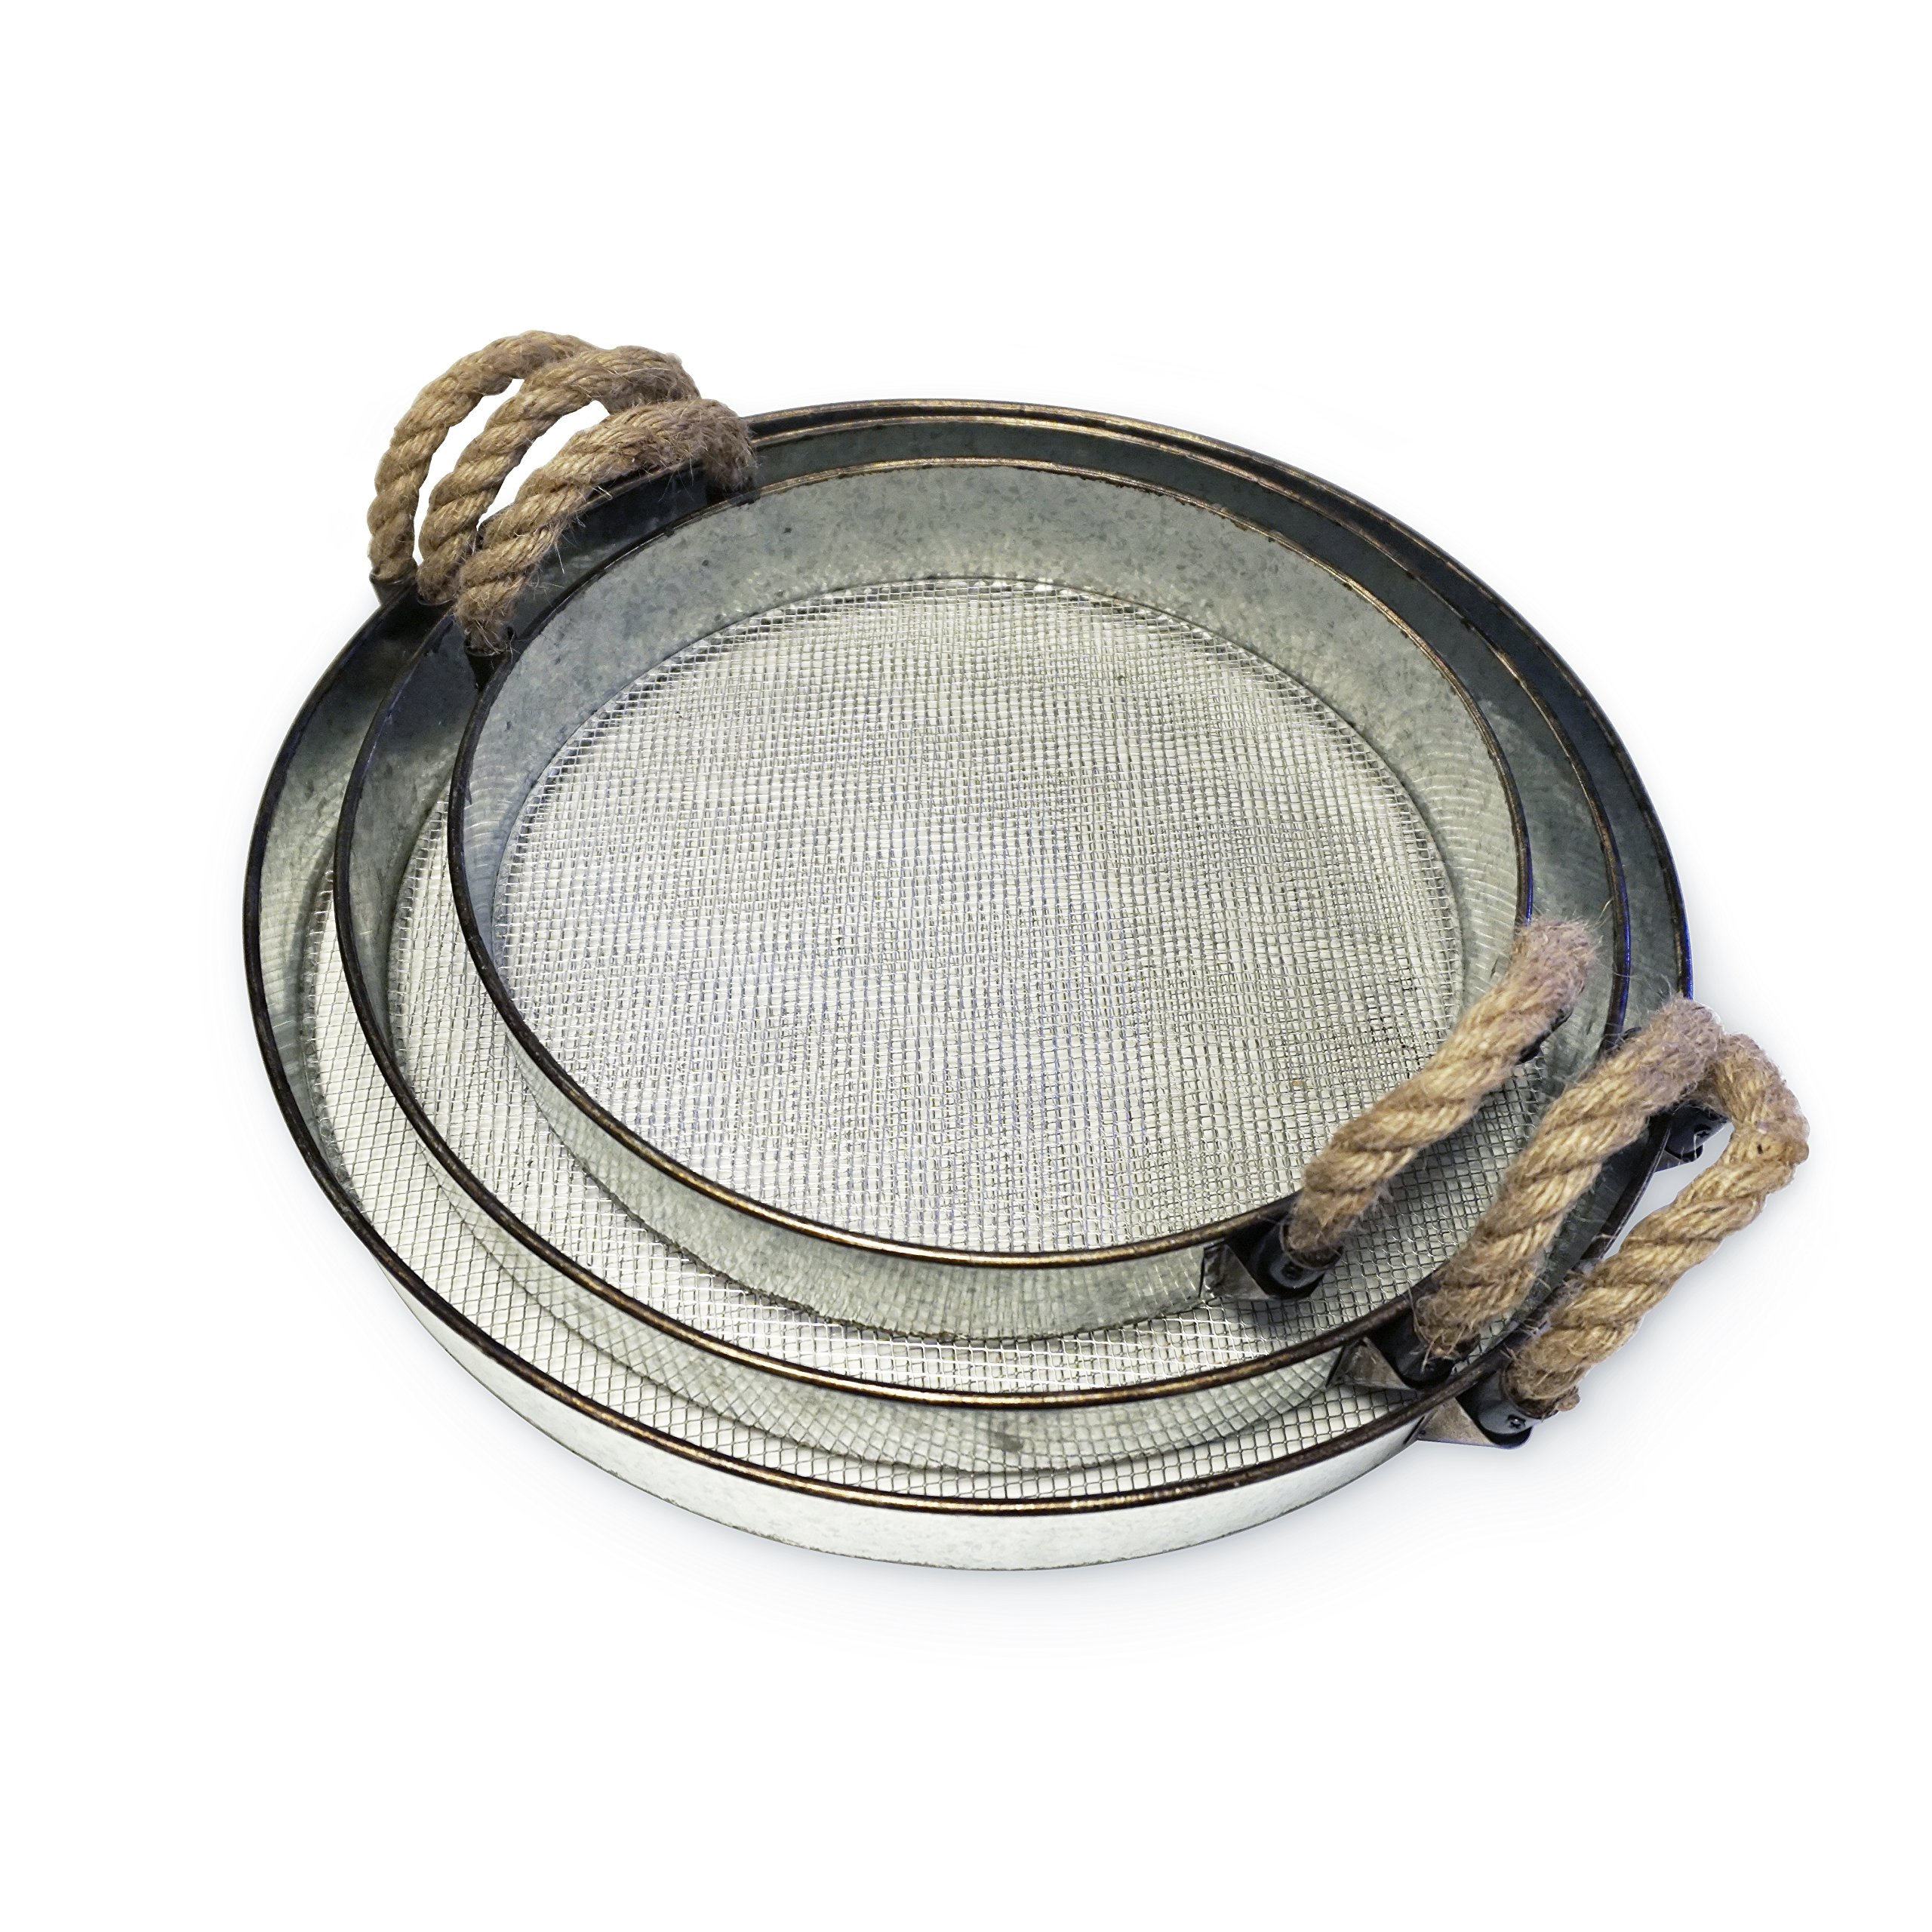 Round Metal Decorative Nesting Tray Set, Mesh Bottom with Rope Handles, Vintage Rustic Distressed Design, Serving Trays for Country Kitchen, Coffee Table, Set of 3